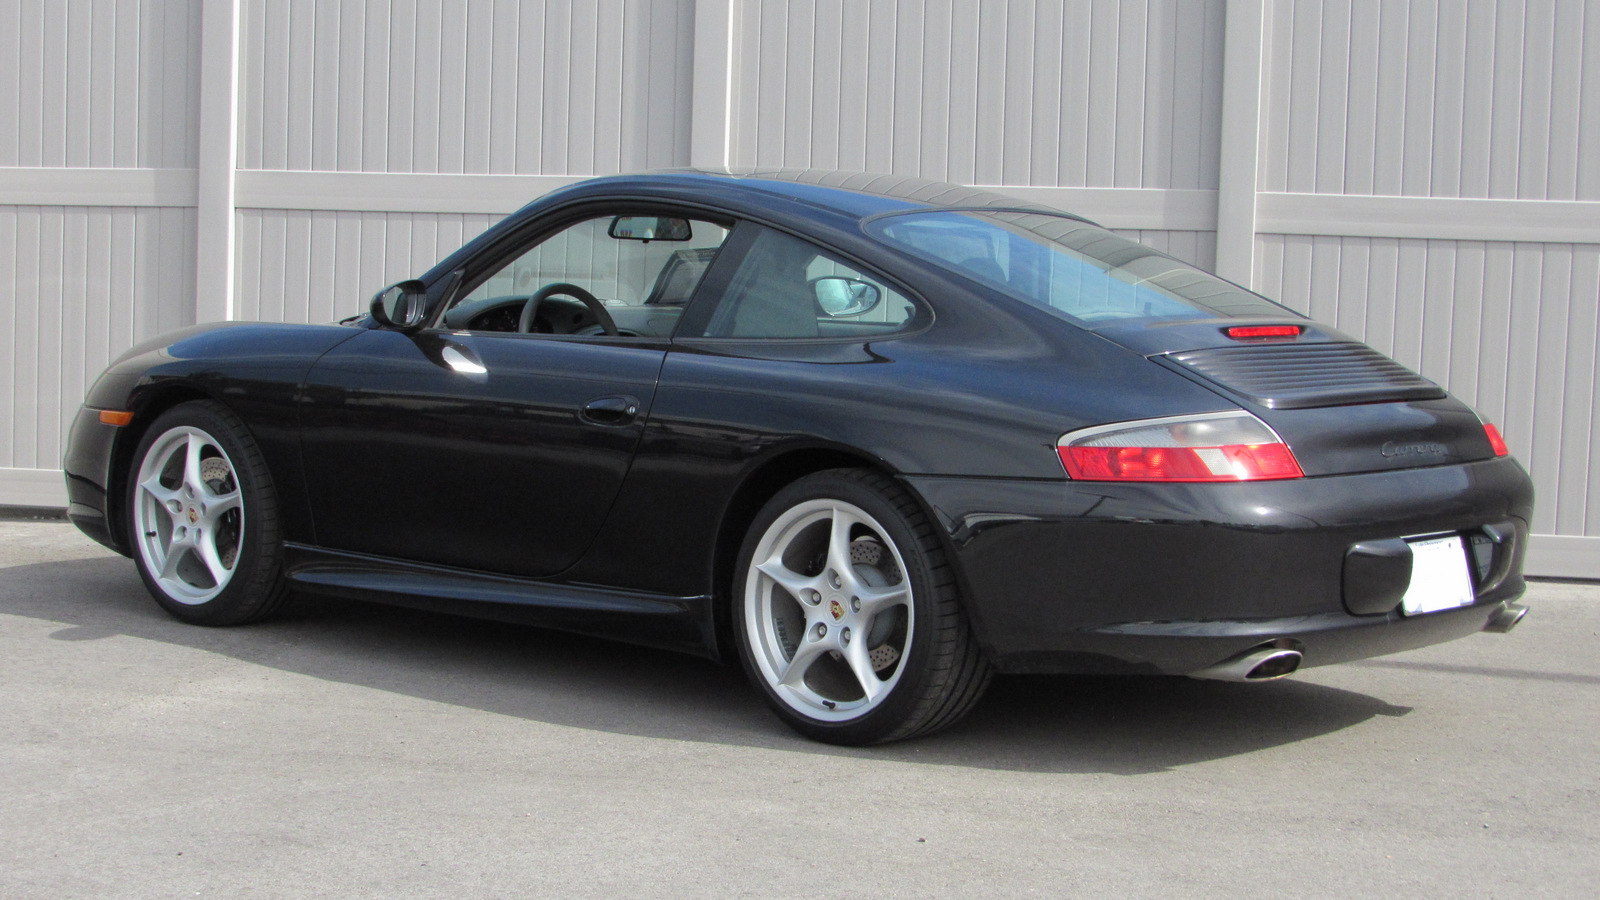 Pre-Owned 2003 Porsche 911 Carrera 2dr Carrera Cpe 6-Spd Manual